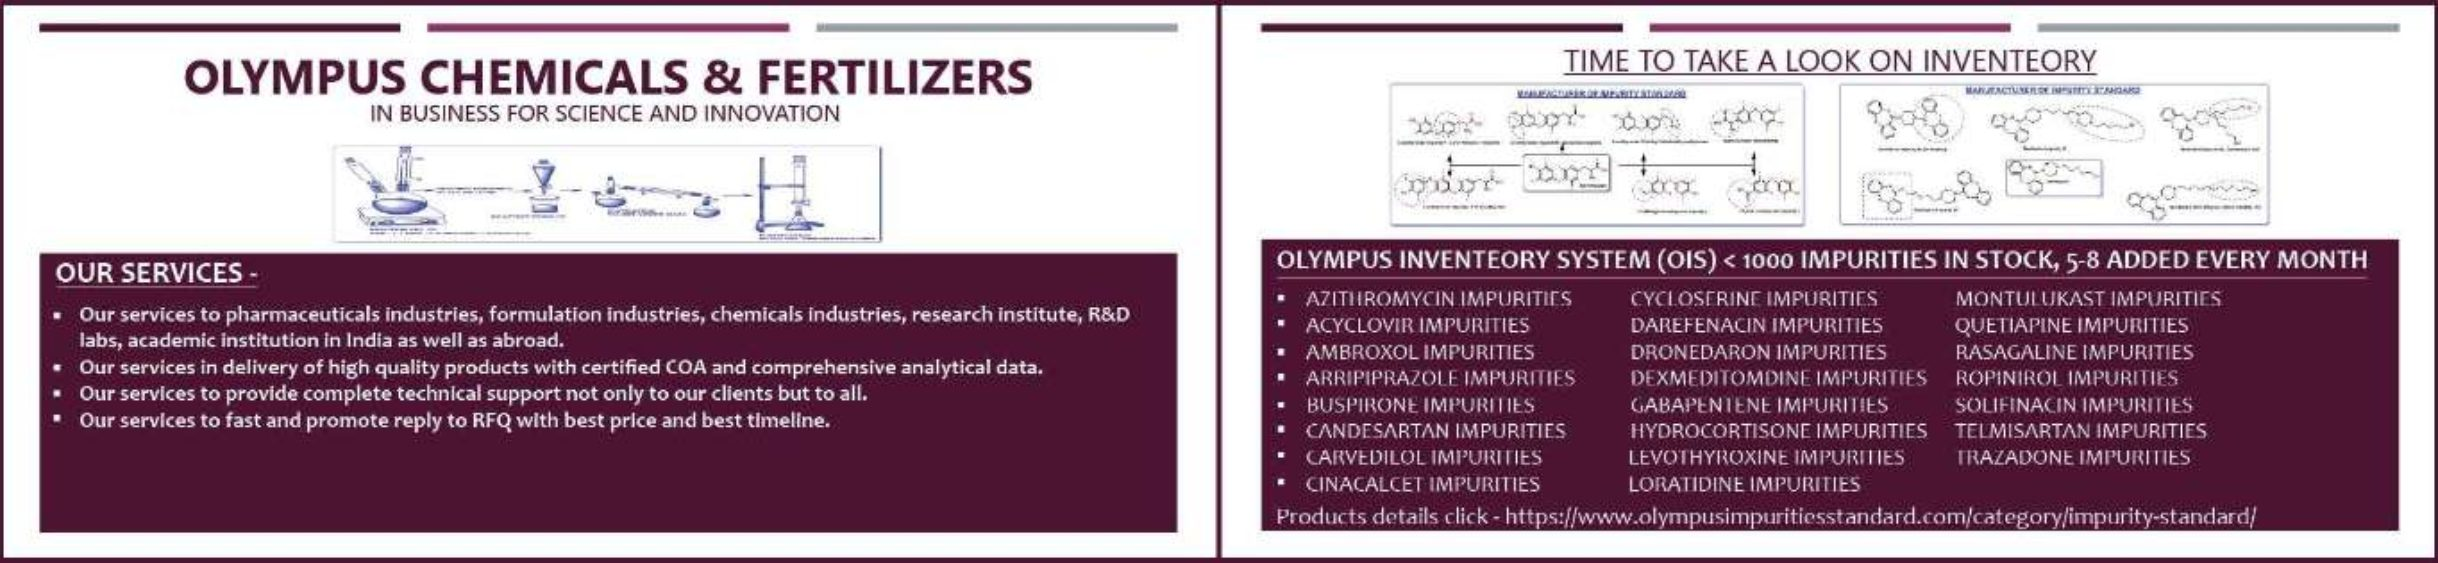 impurities-standard-supplier-olympus-chemicals-and-fertilizers-2